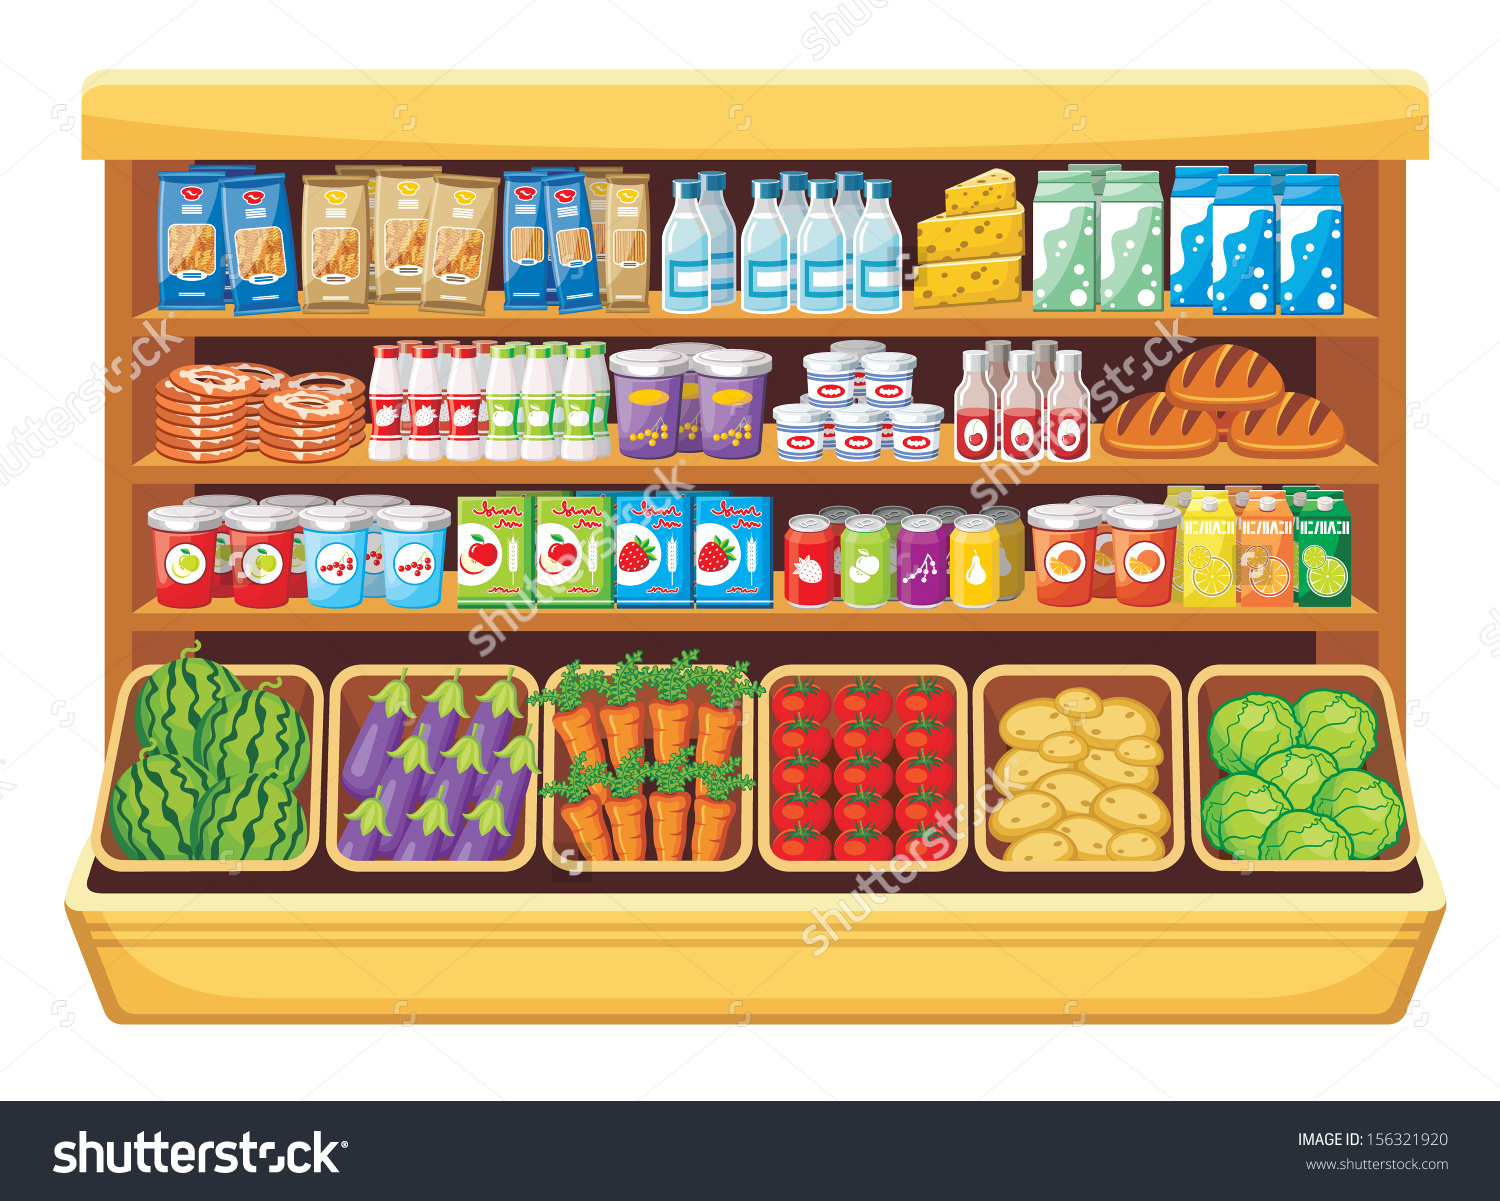 royalty free download  clipartlook. Supermarket clipart stall